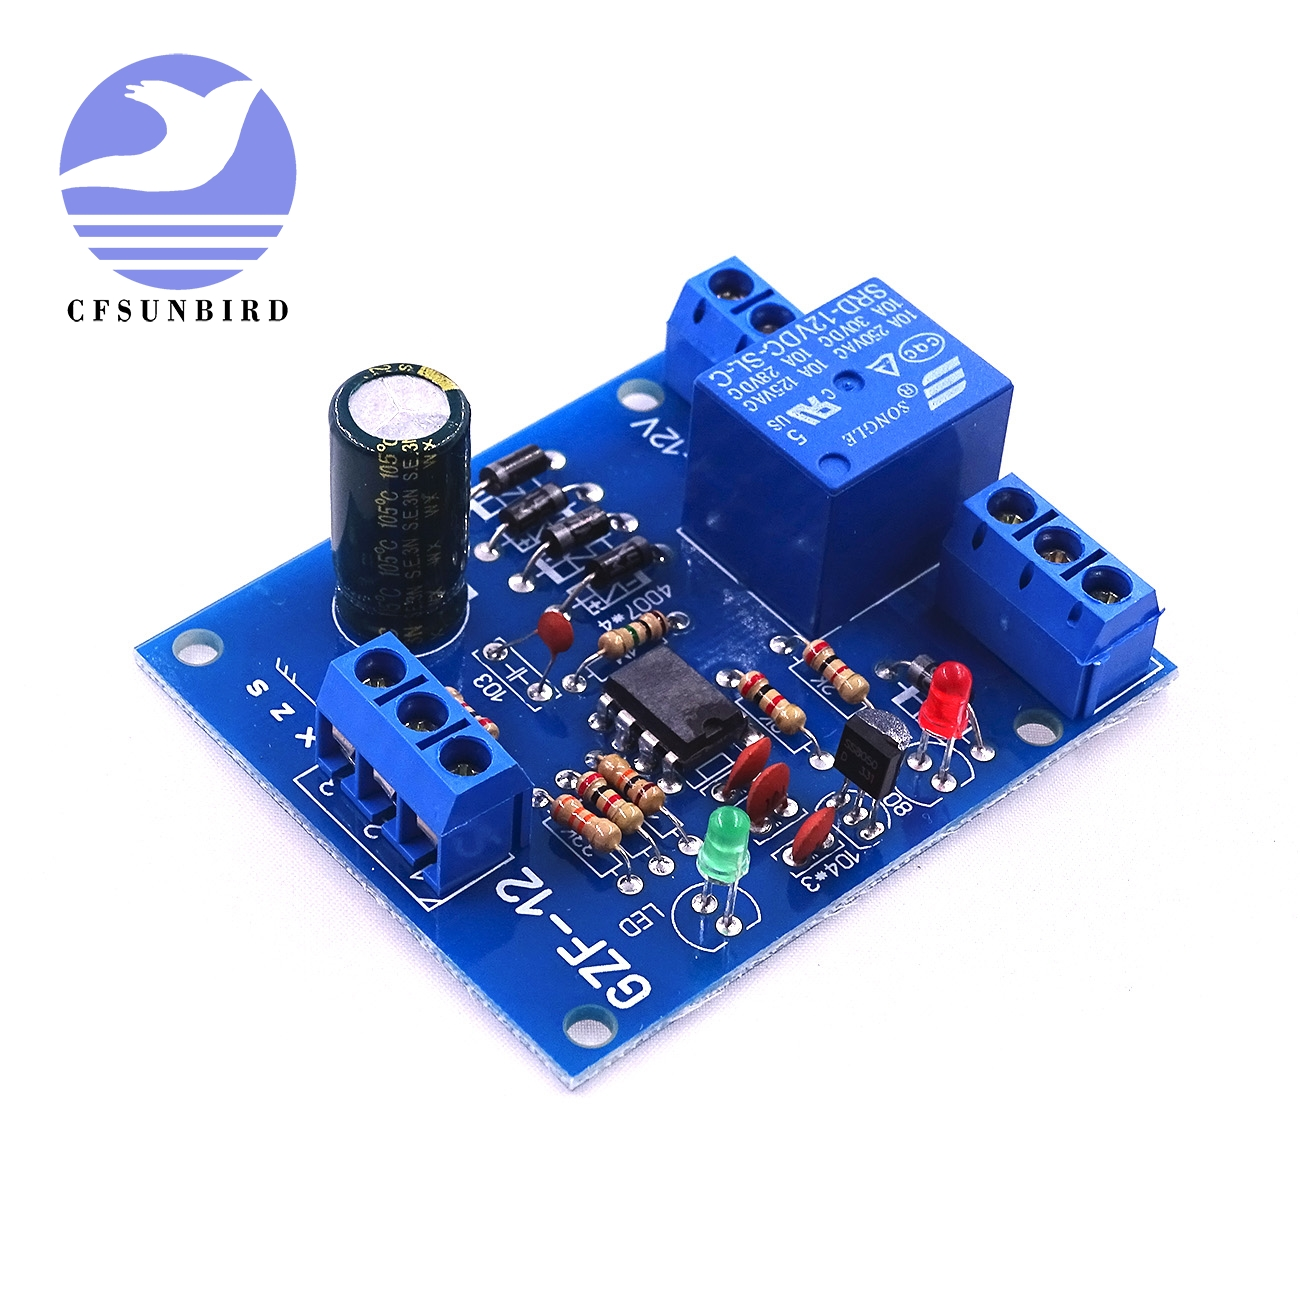 Analytical 5 Pcs/lot Cfsunbird Liquid Level Controller Sensor Module Water Level Detection Sensor Electronic Components For Sale Electronics Stocks